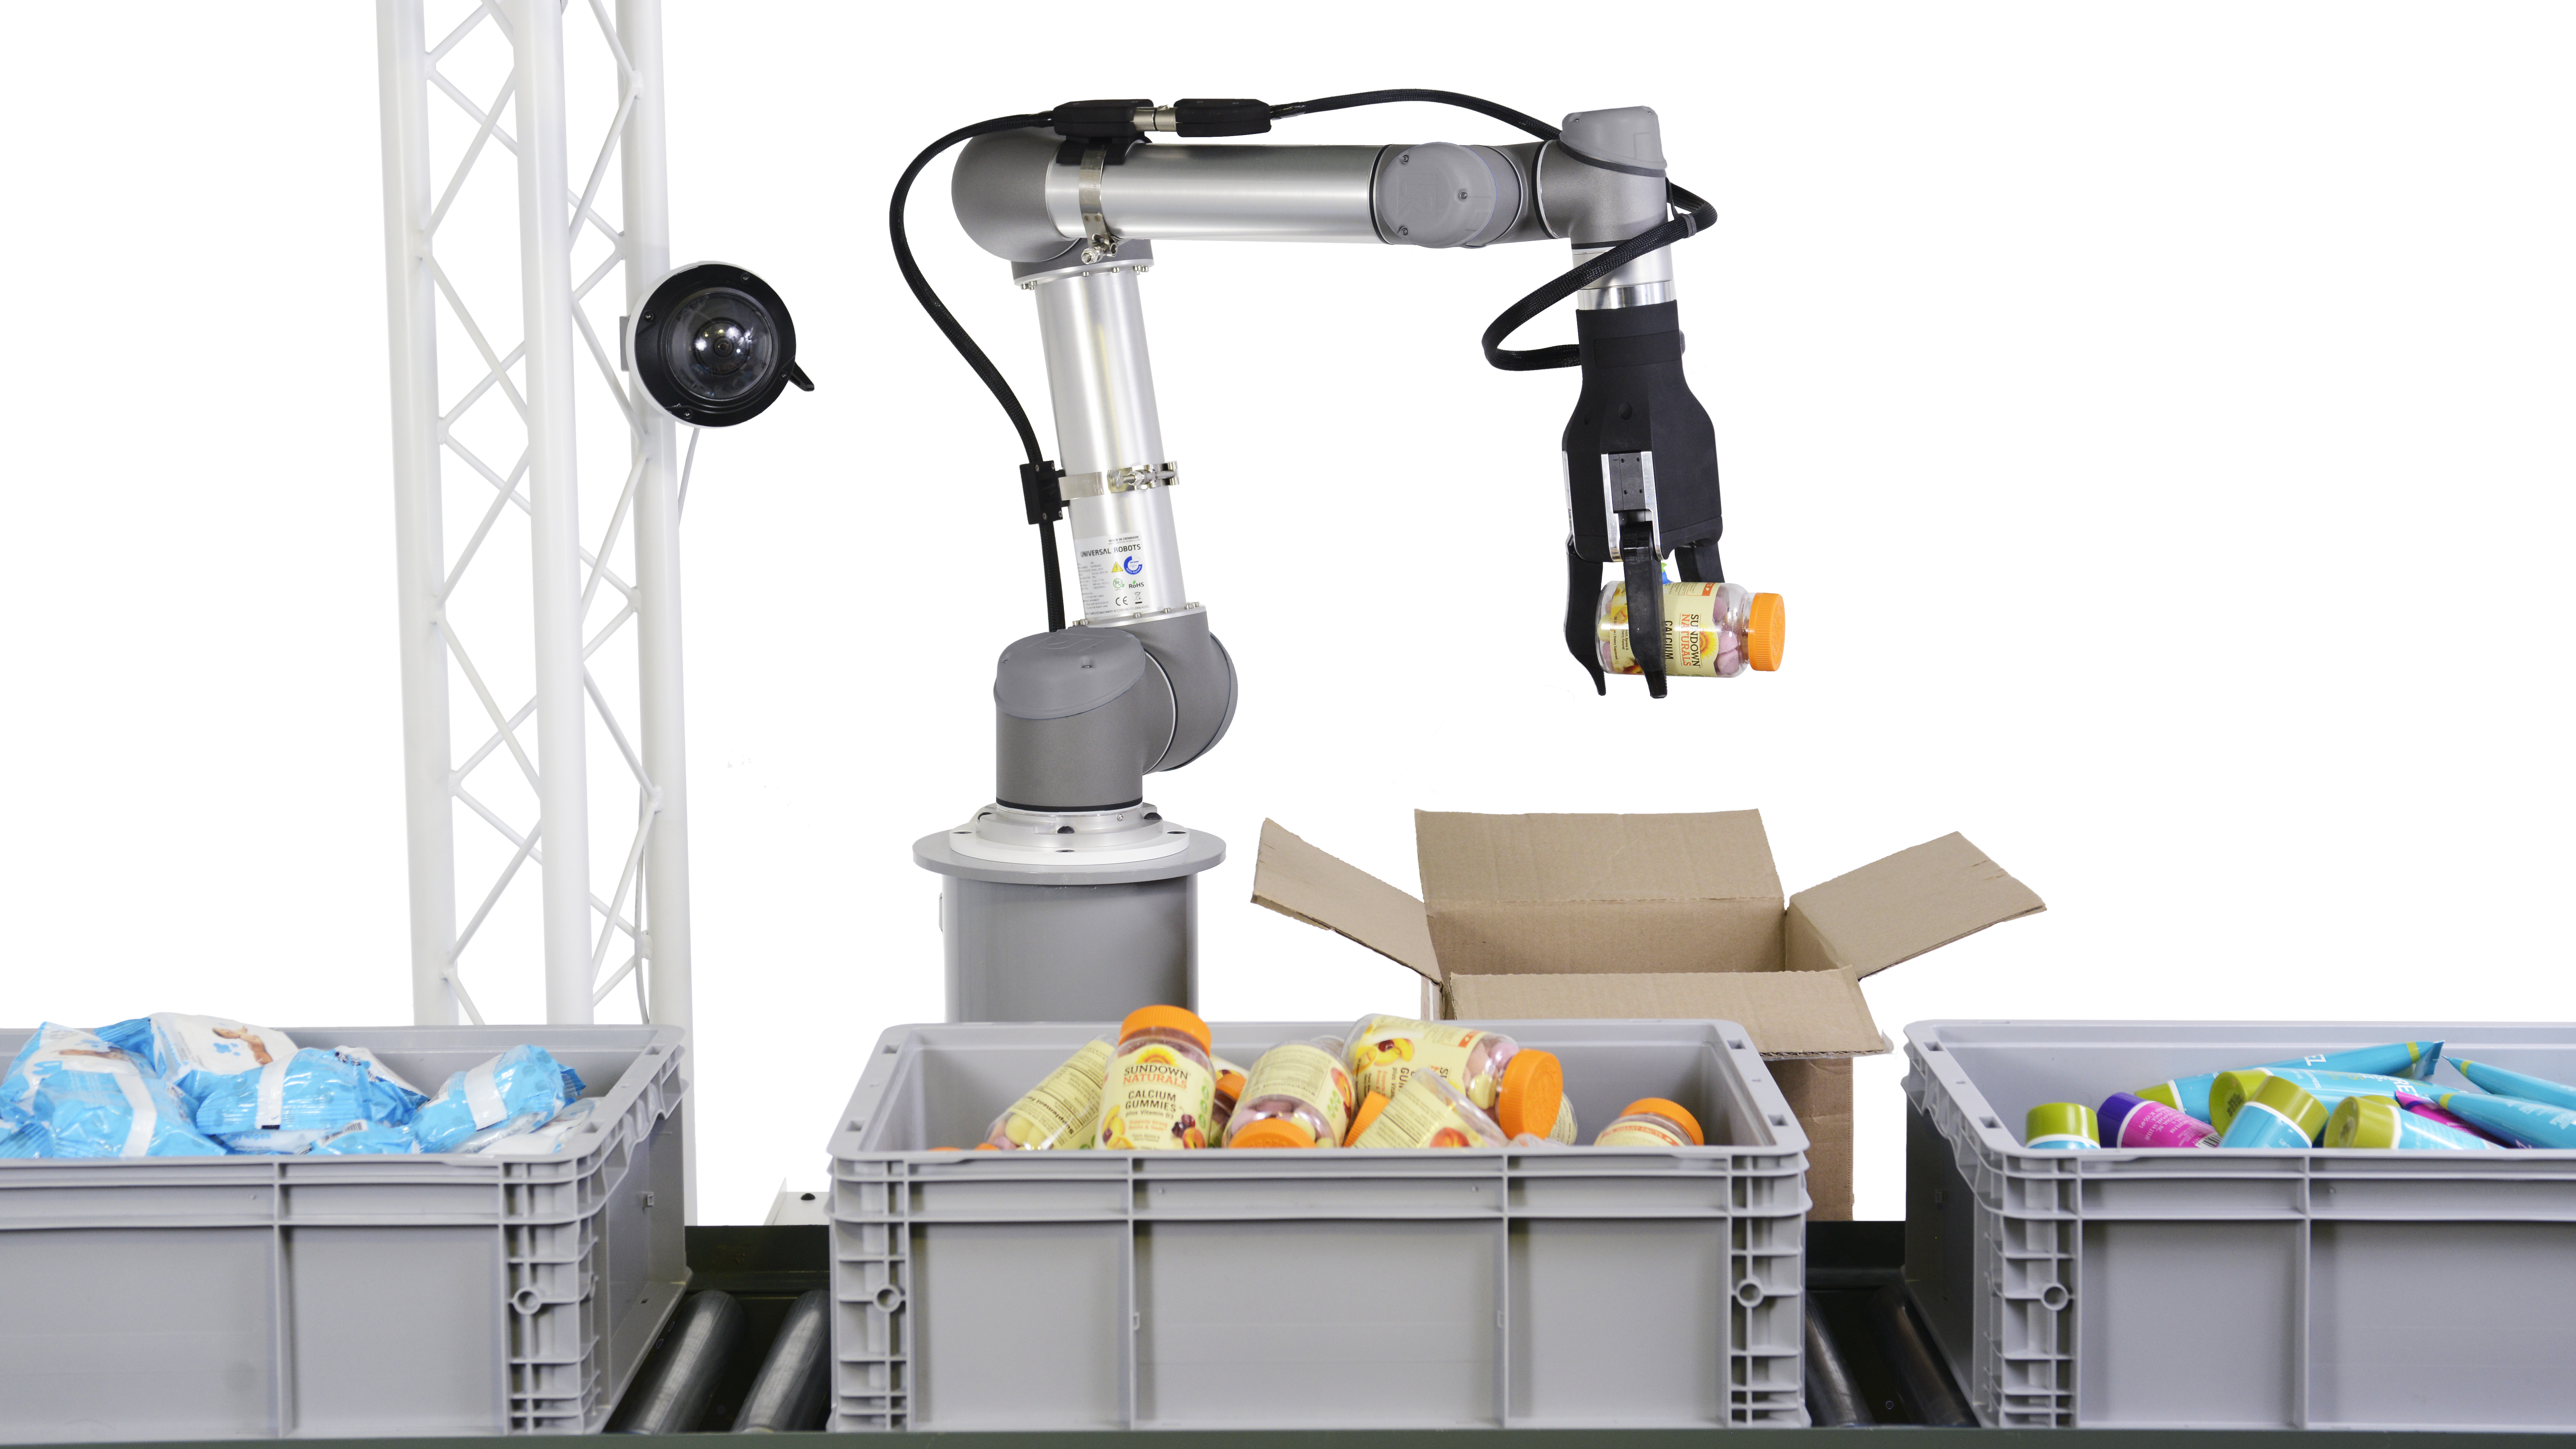 RightHand robotics has automated a new type of warehouse